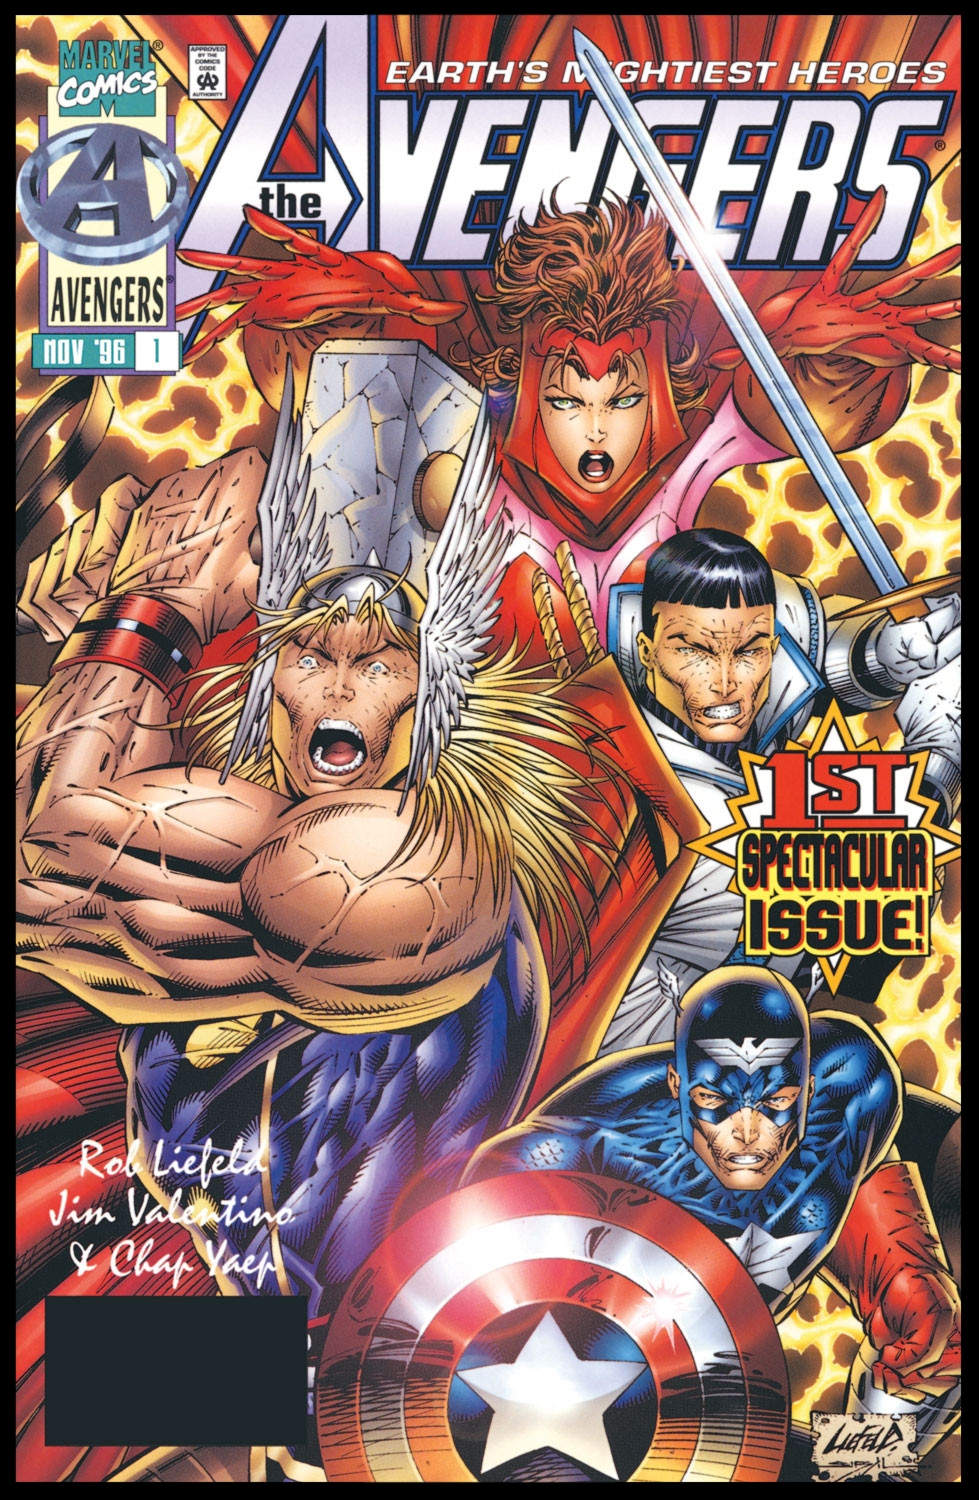 The Avengers (1996) #1 Cover